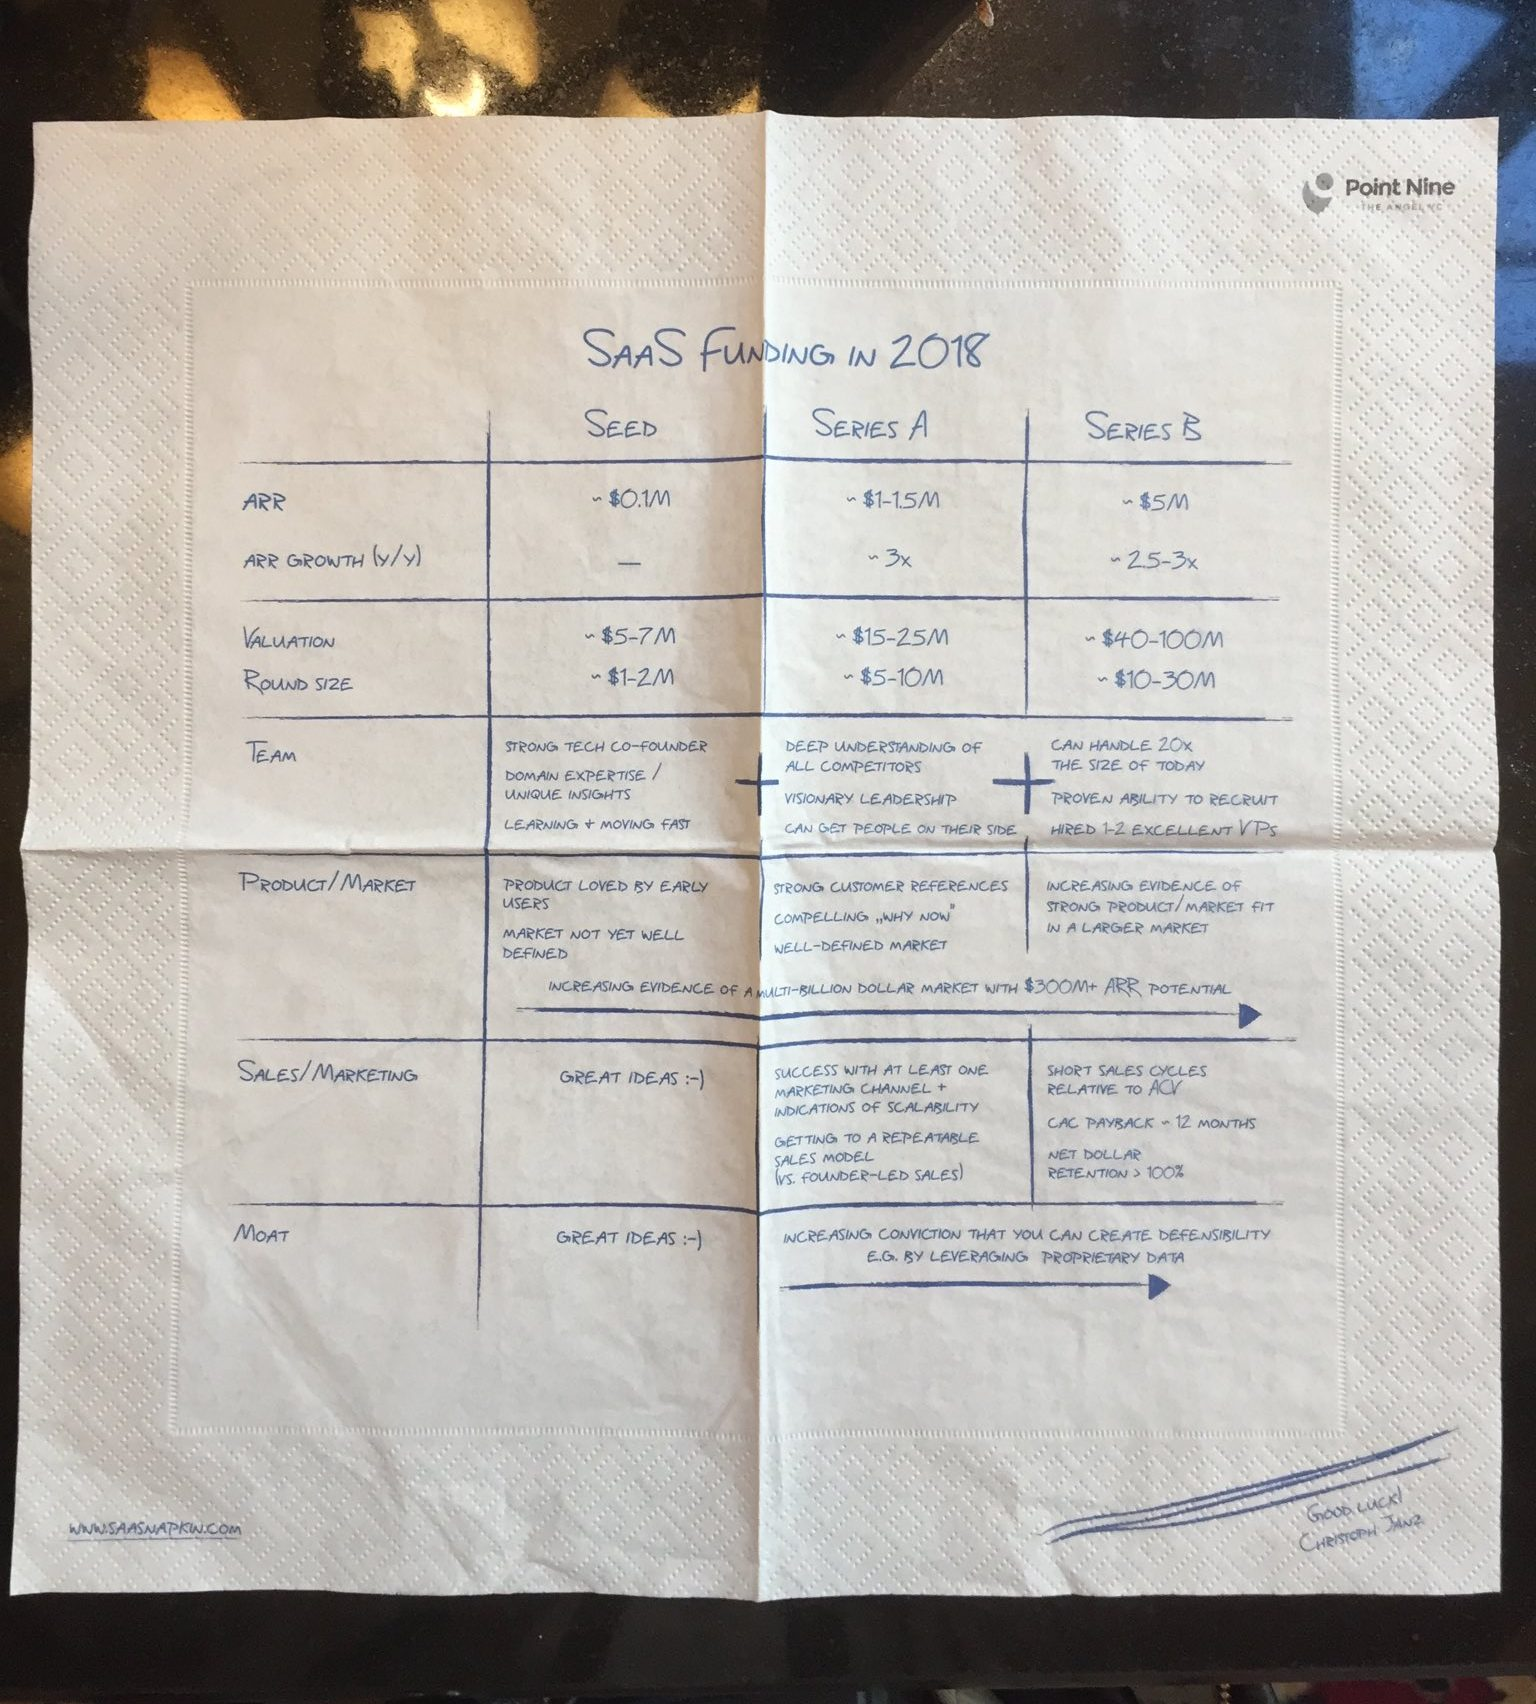 SaaStr Europa - Point Nine Capital - SaaS Funding Napkin